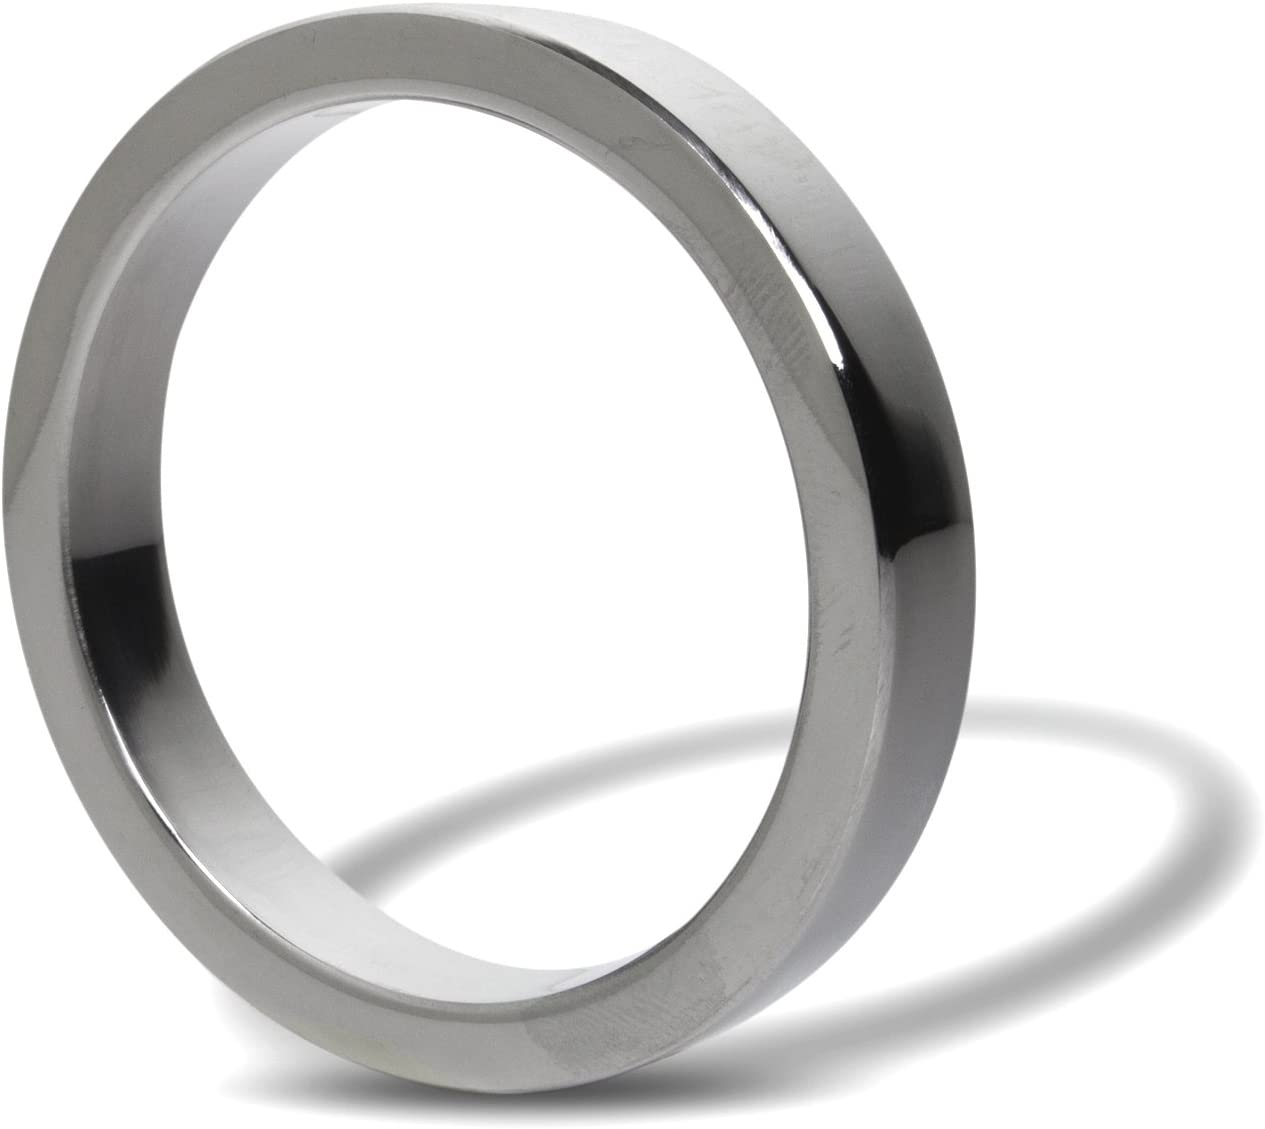 Eyro Cock Ring Wide Oakland Mall Stainless Popularity Steel- 2.0